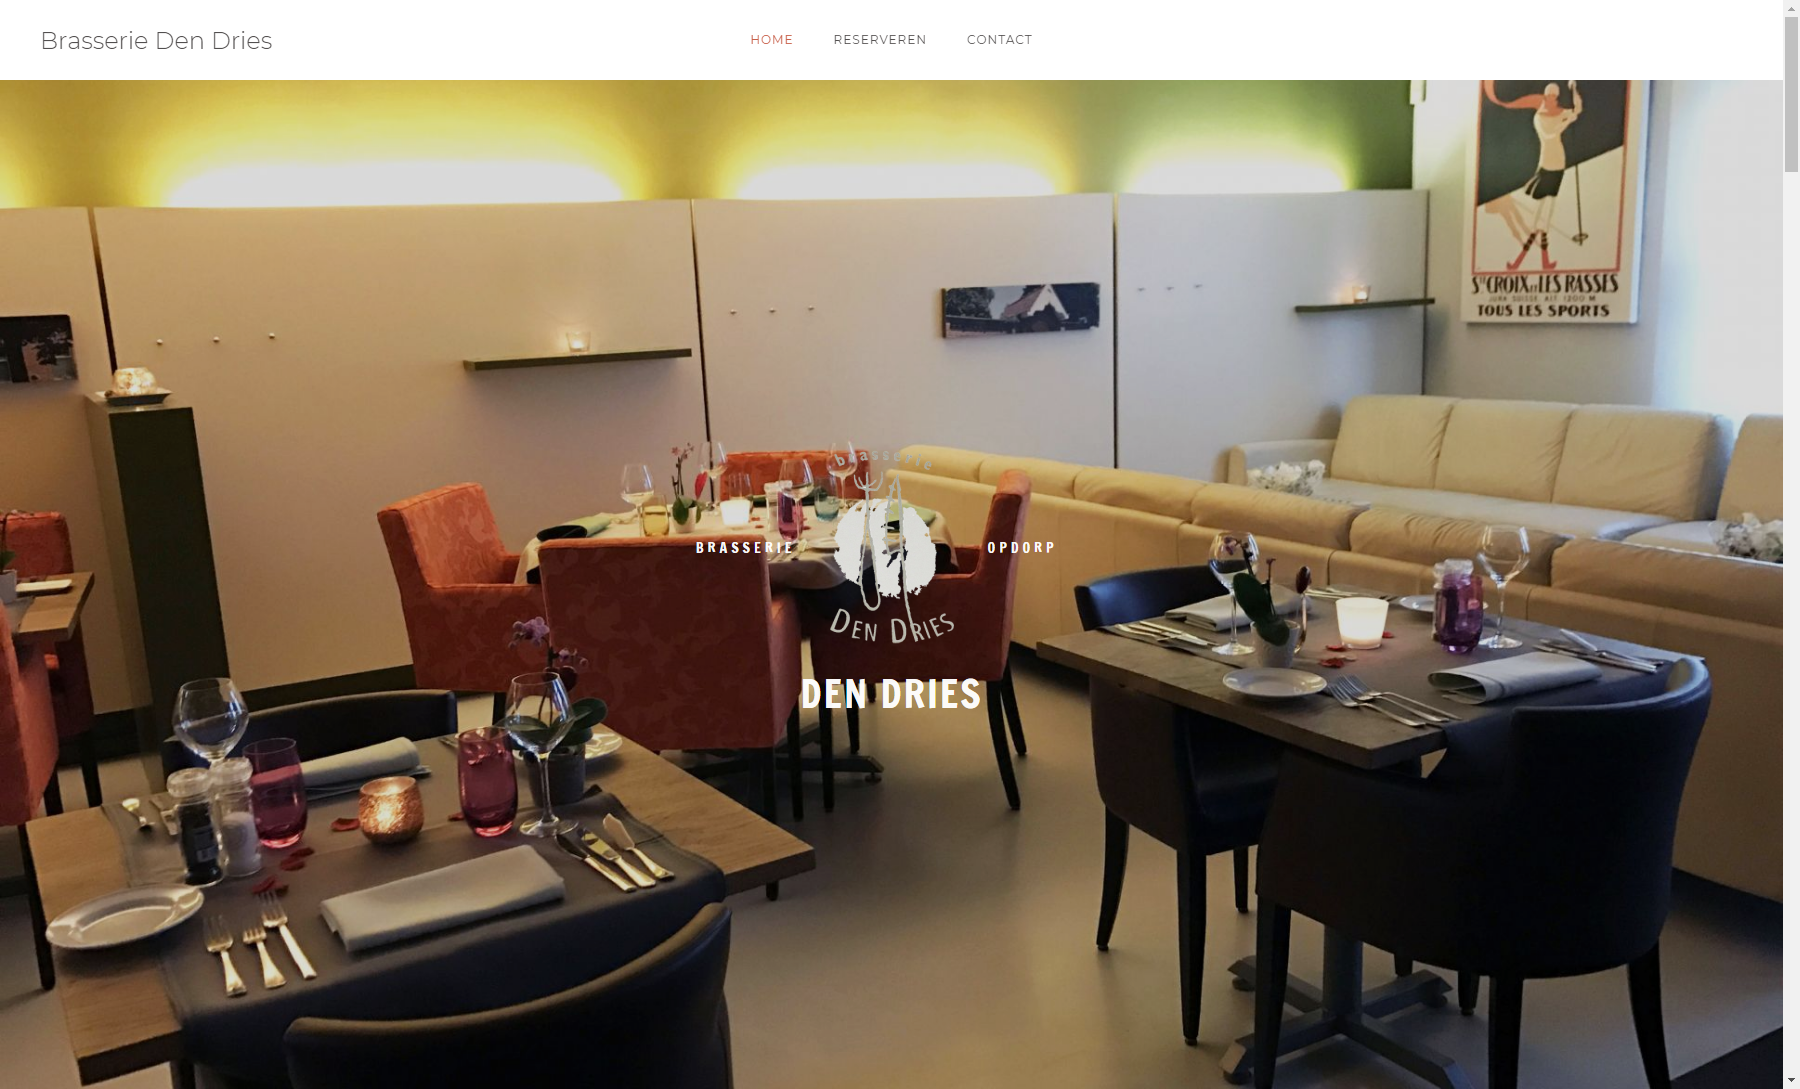 Website Brasserie Den Dries 2